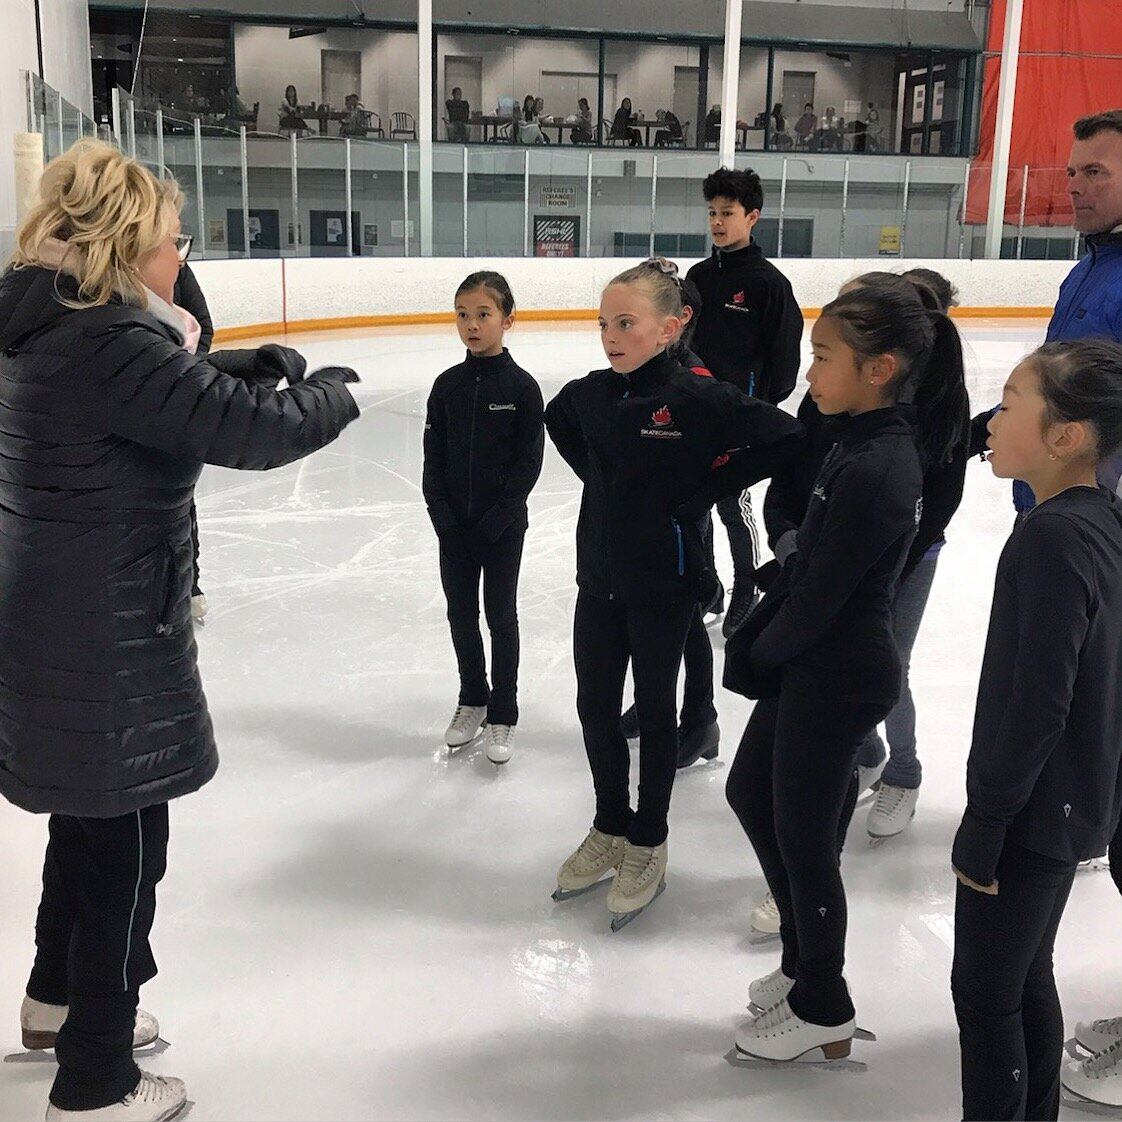 Joanne with Scott Davis working with BC Team skaters at the BC Team Development camp